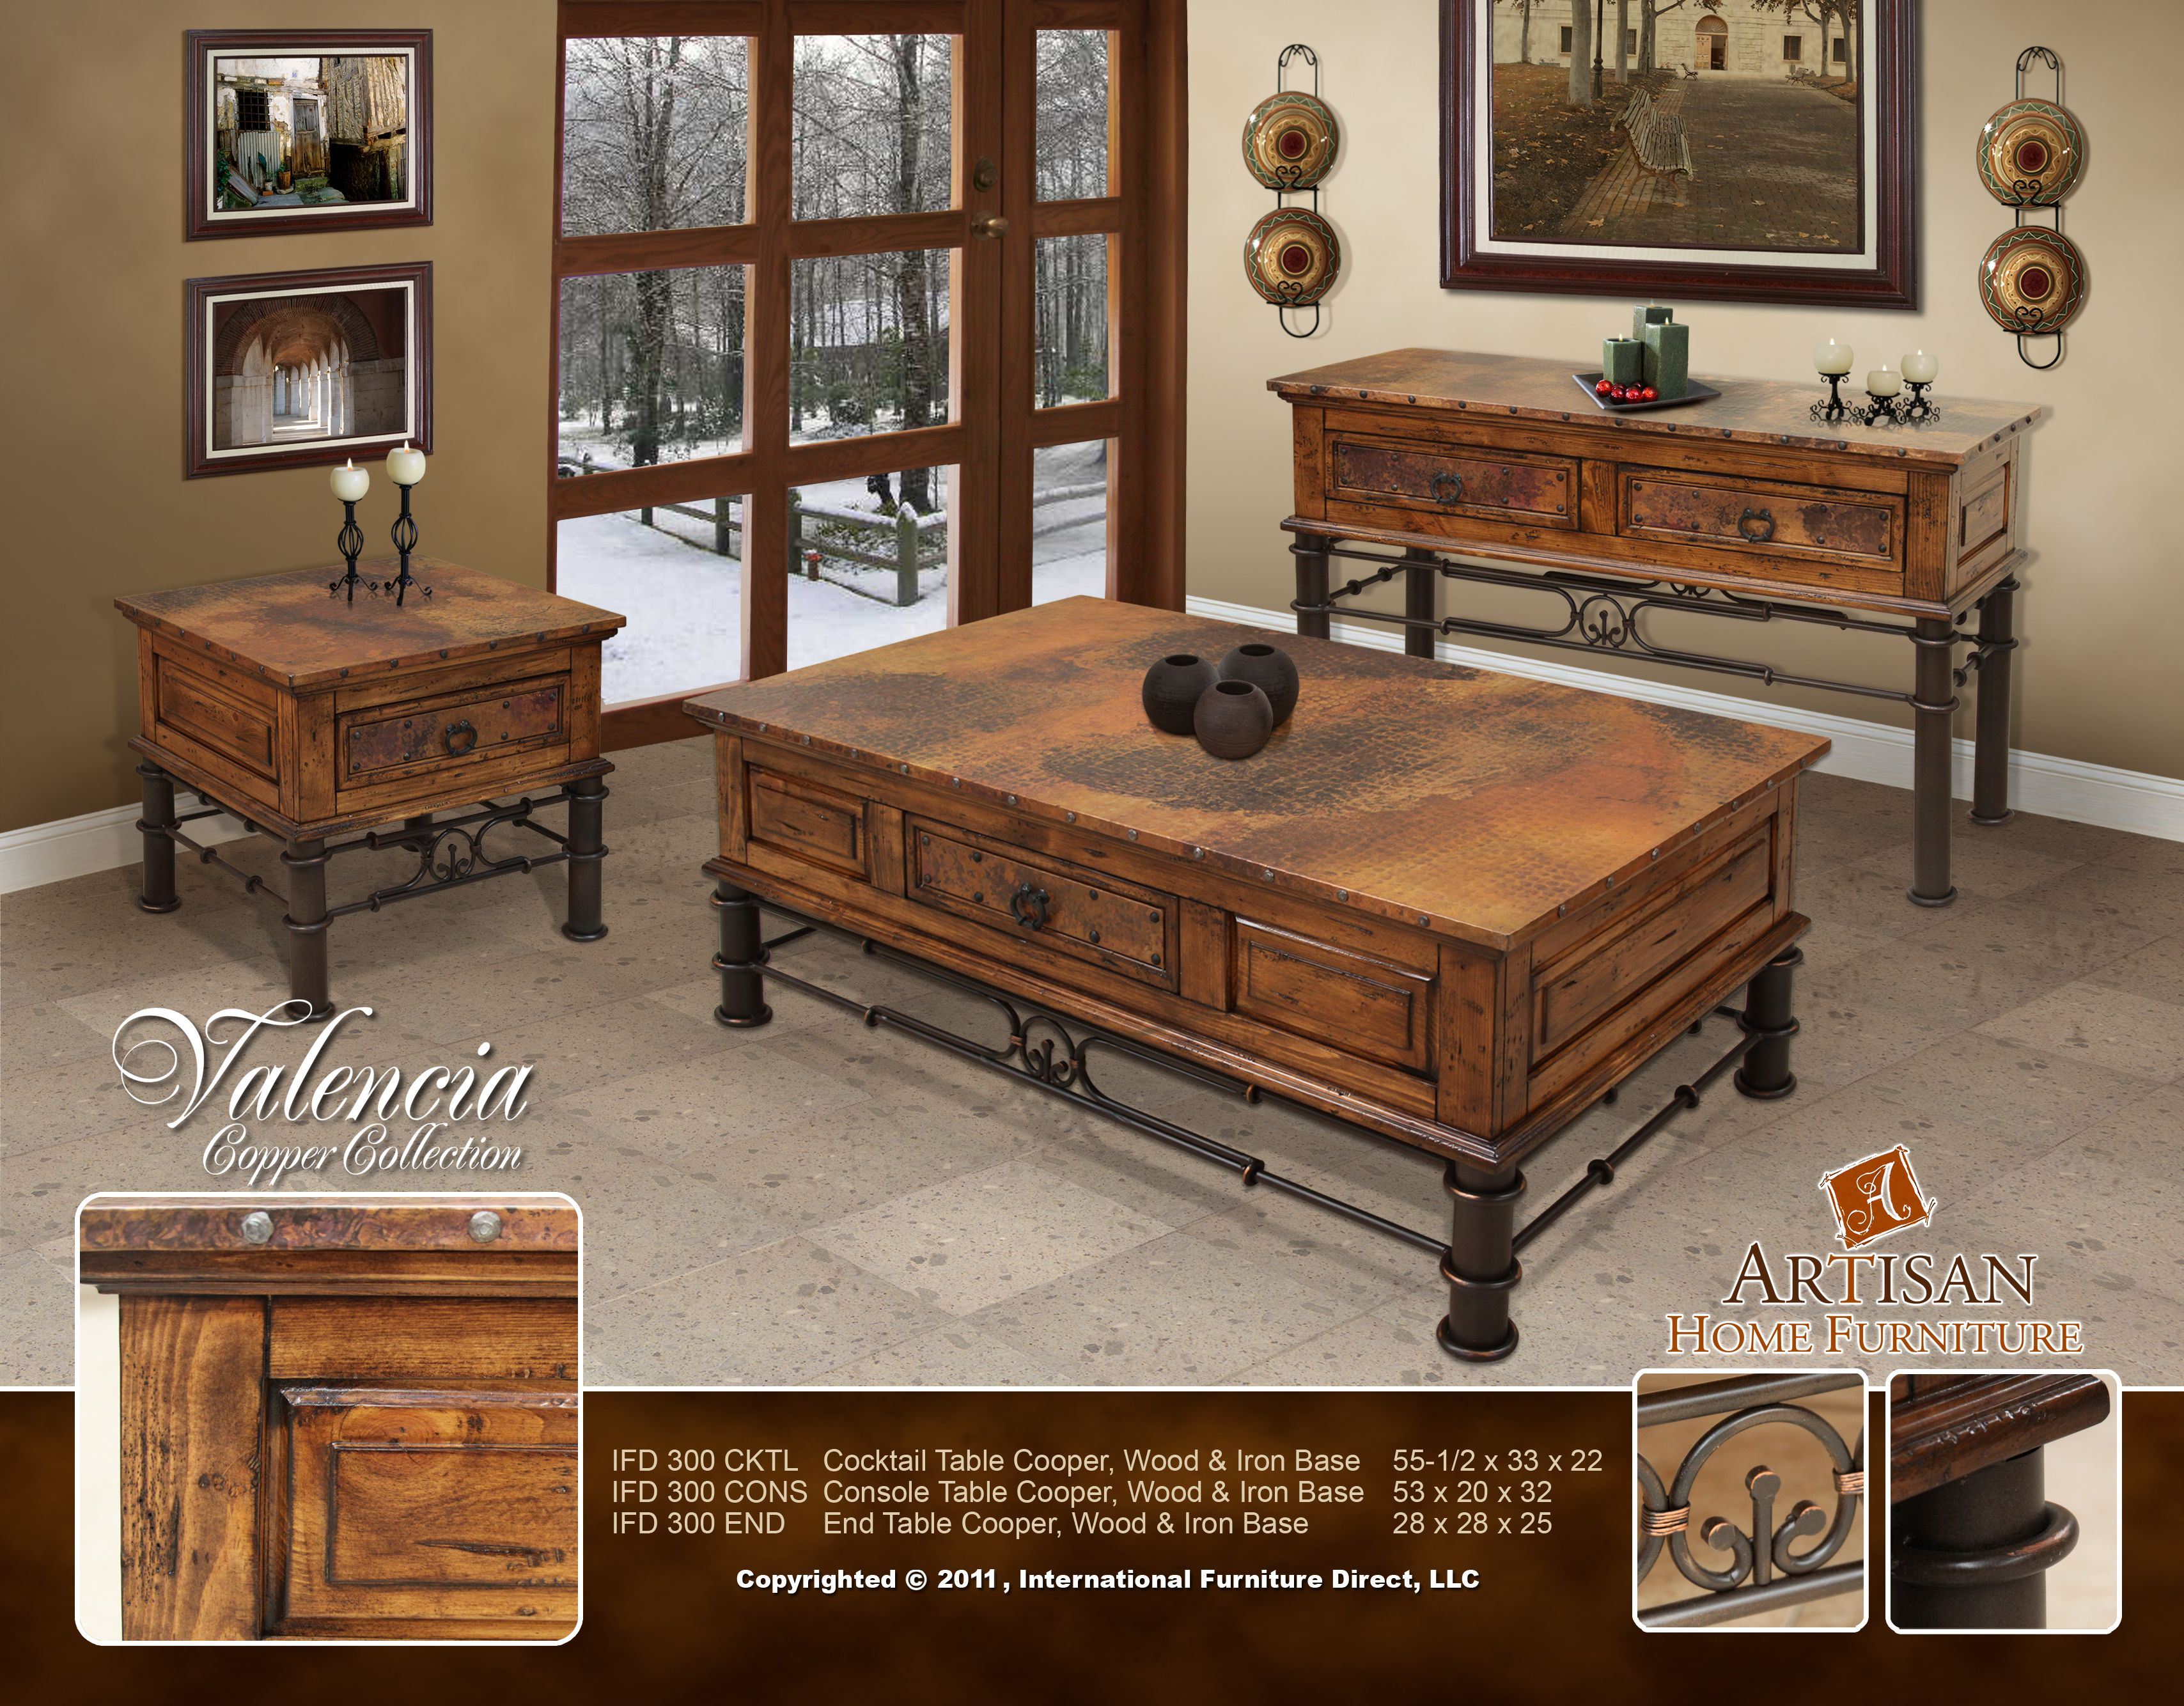 Rustic+Furniture | Artisan Rustic Furniture, International Furniture  Designs Phoenix